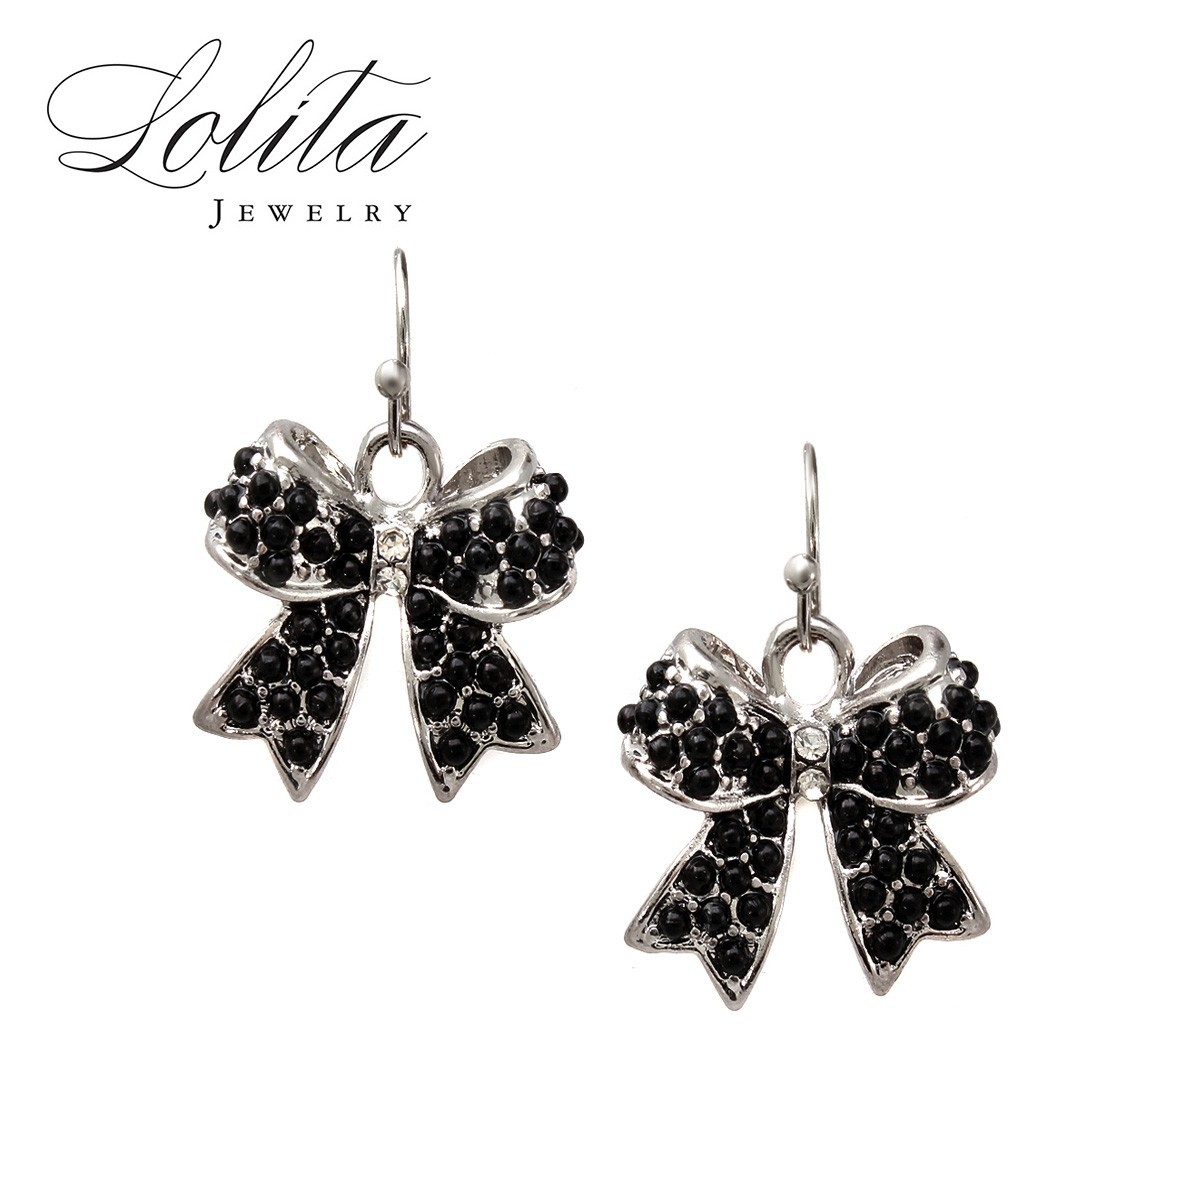 1627base Mini Bow Studded Drop Earrings Only $5.00 Shipped with New Member Credit!